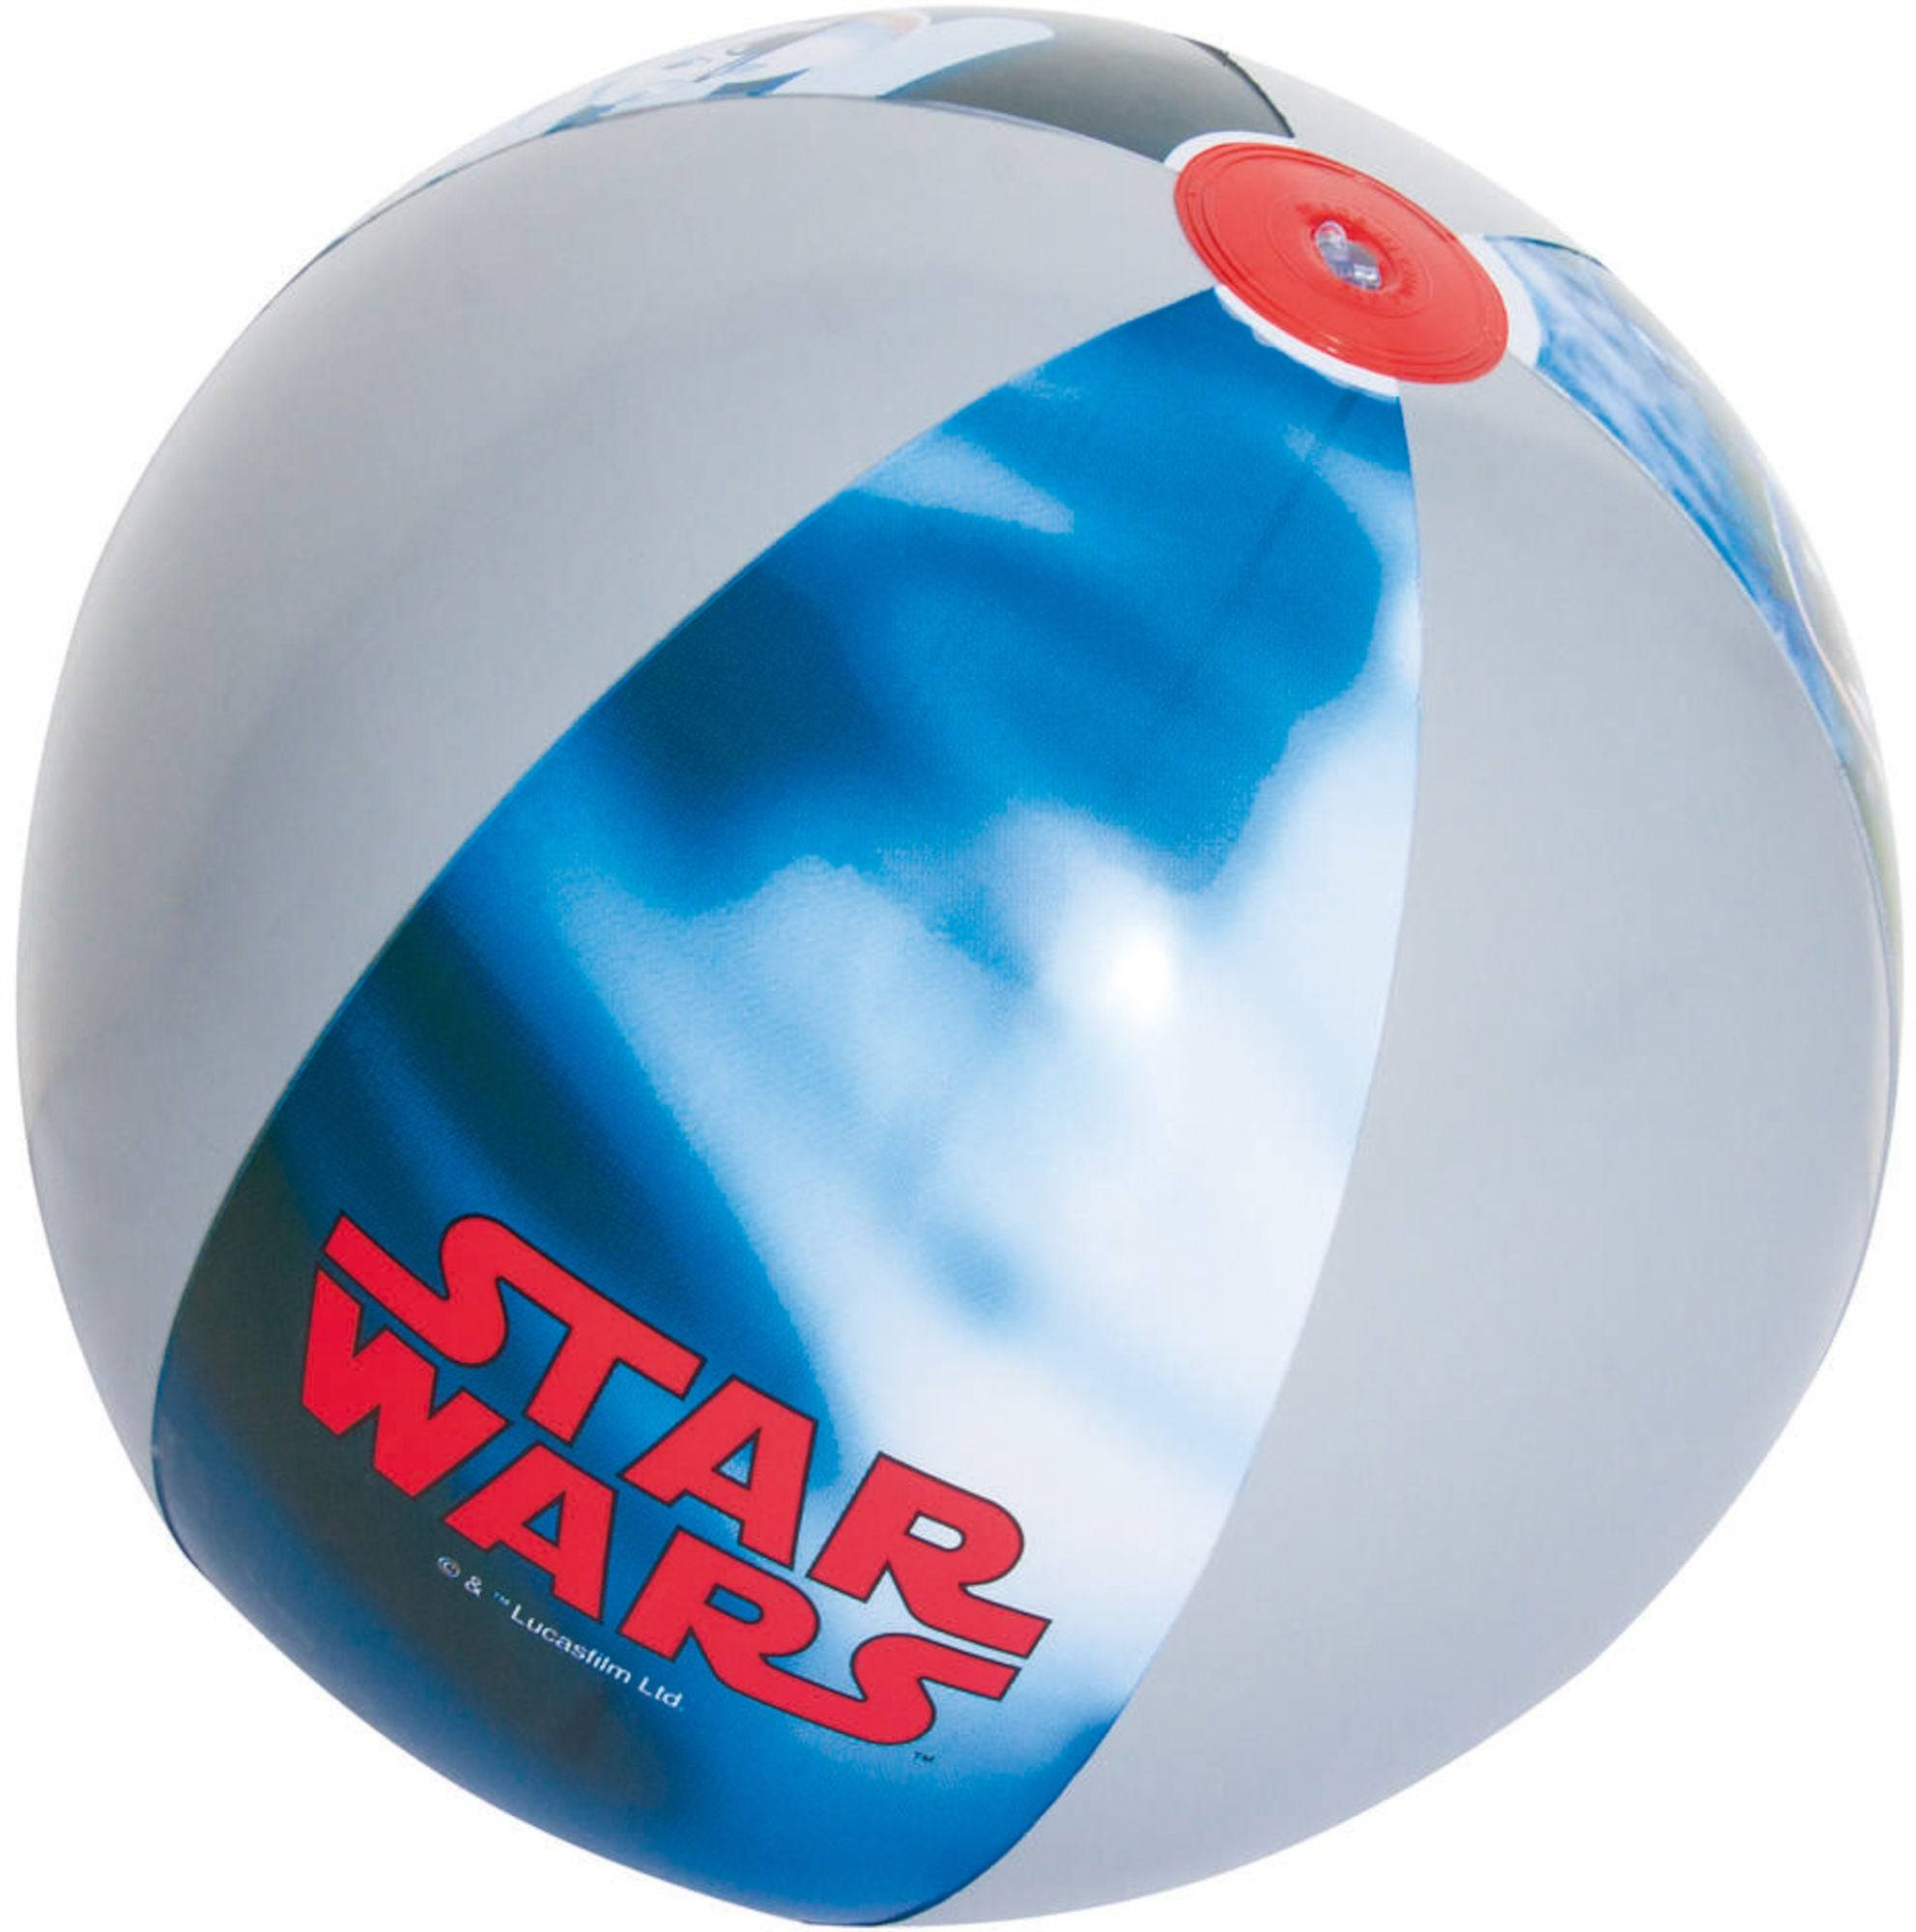 Star Wars Badeball